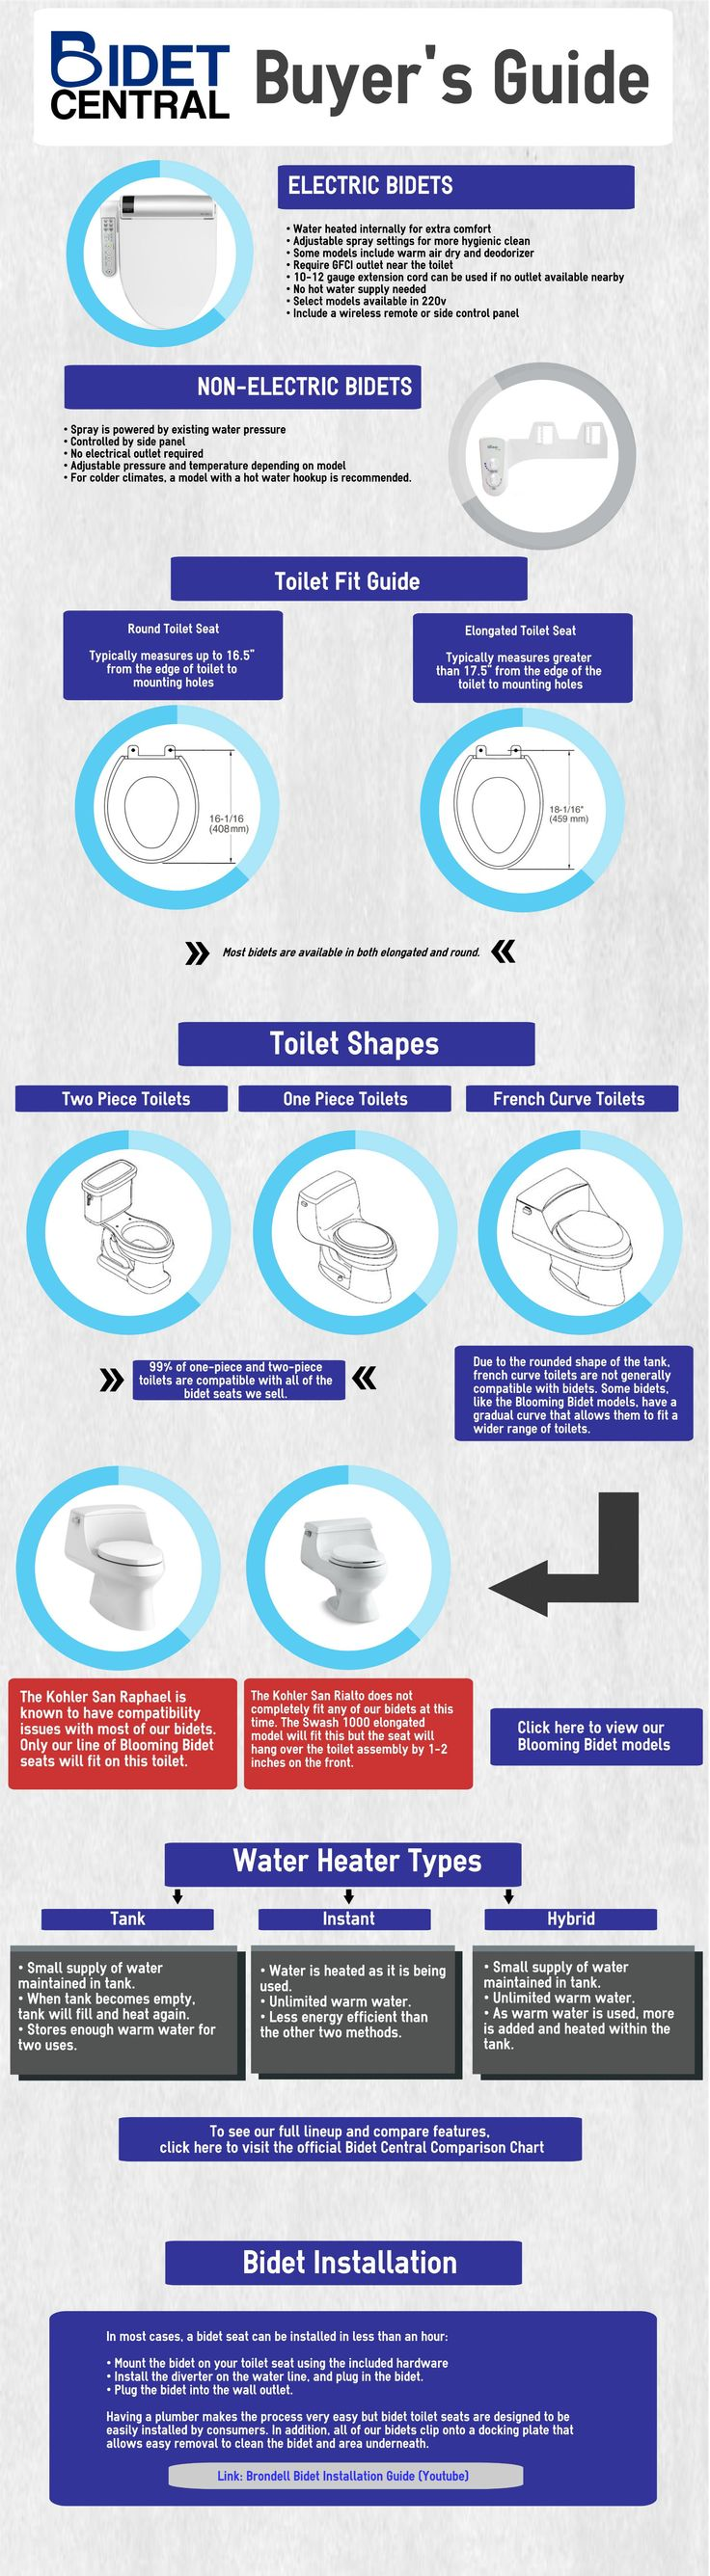 Learn how you can retrofit a bidet seat onto your existing toilet using our handy buyers guide infographic.